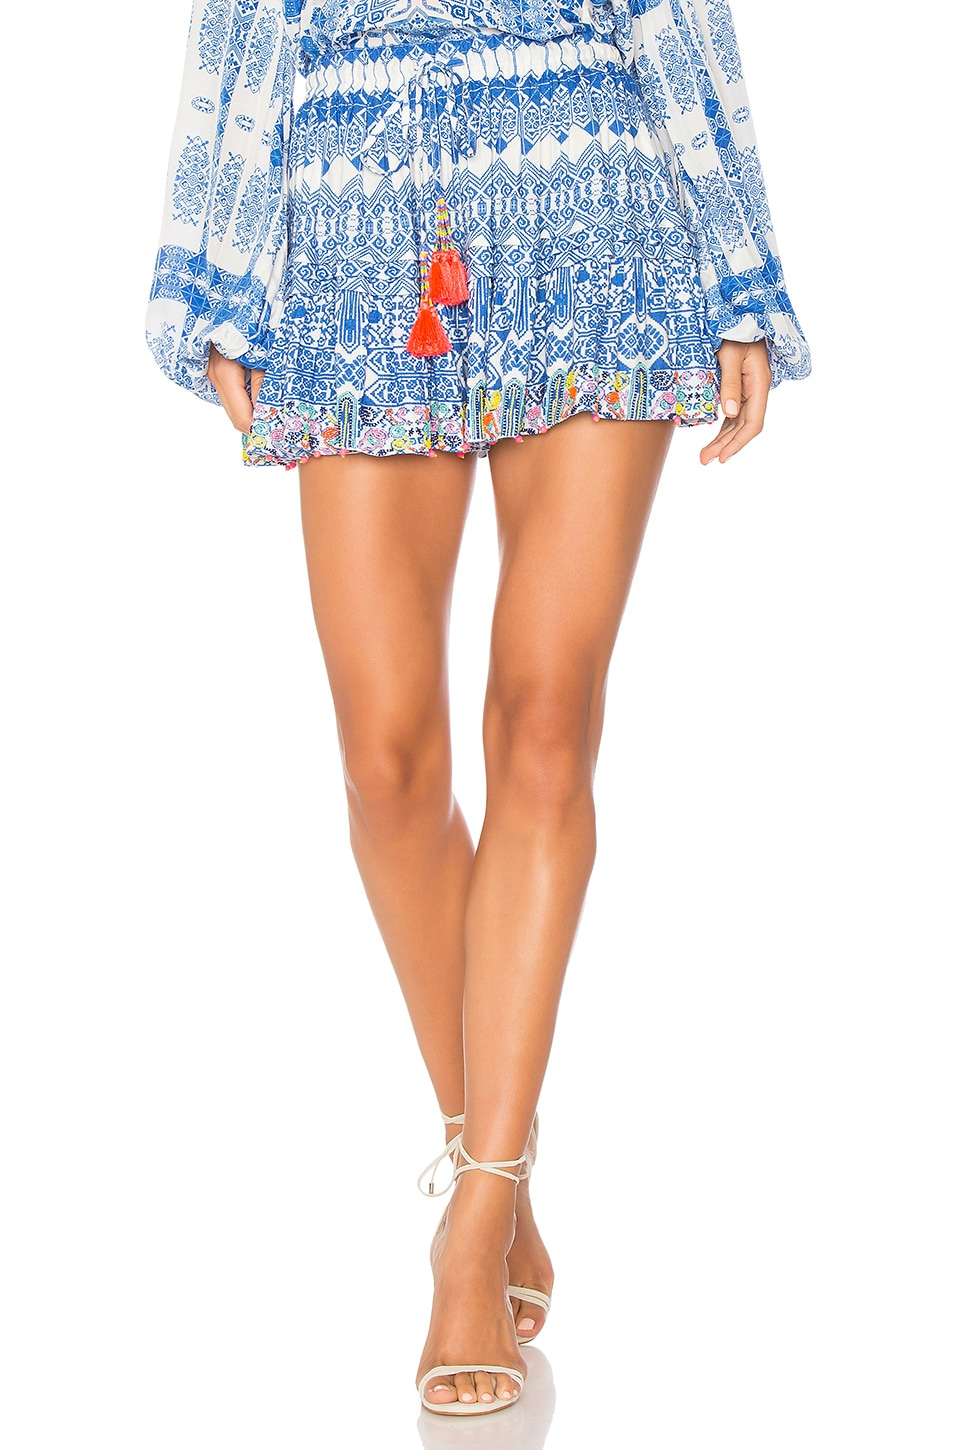 ROCOCO SAND Ionic Skirt in Blue